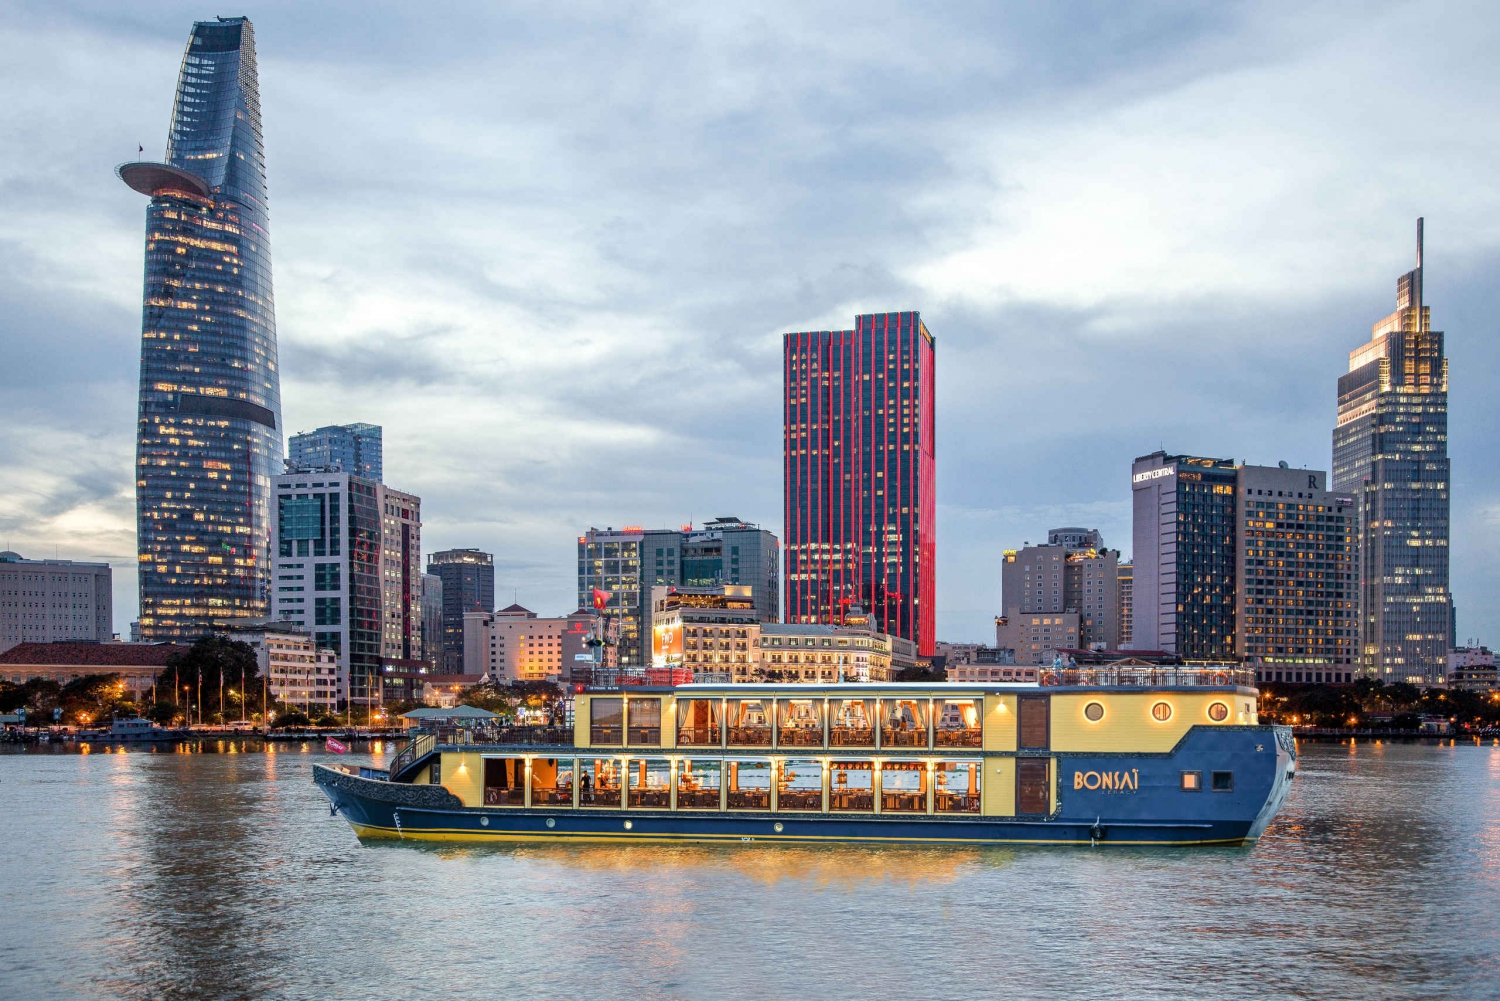 Bonsai Cruise: 2-Hour Dinner Cruise on the Saigon River